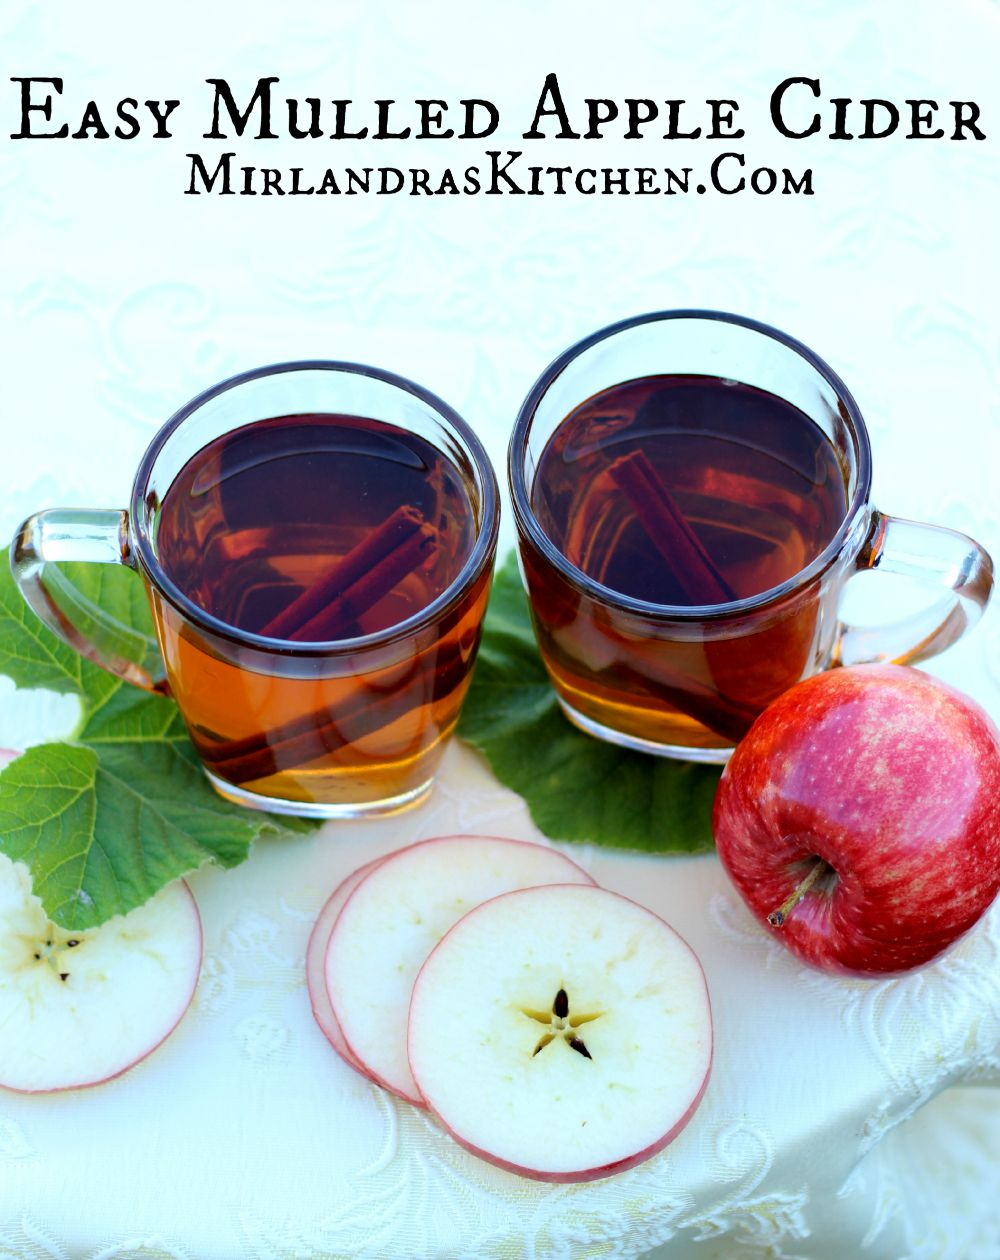 Easy Mulled Apple Cider - Mirlandra's Kitchen